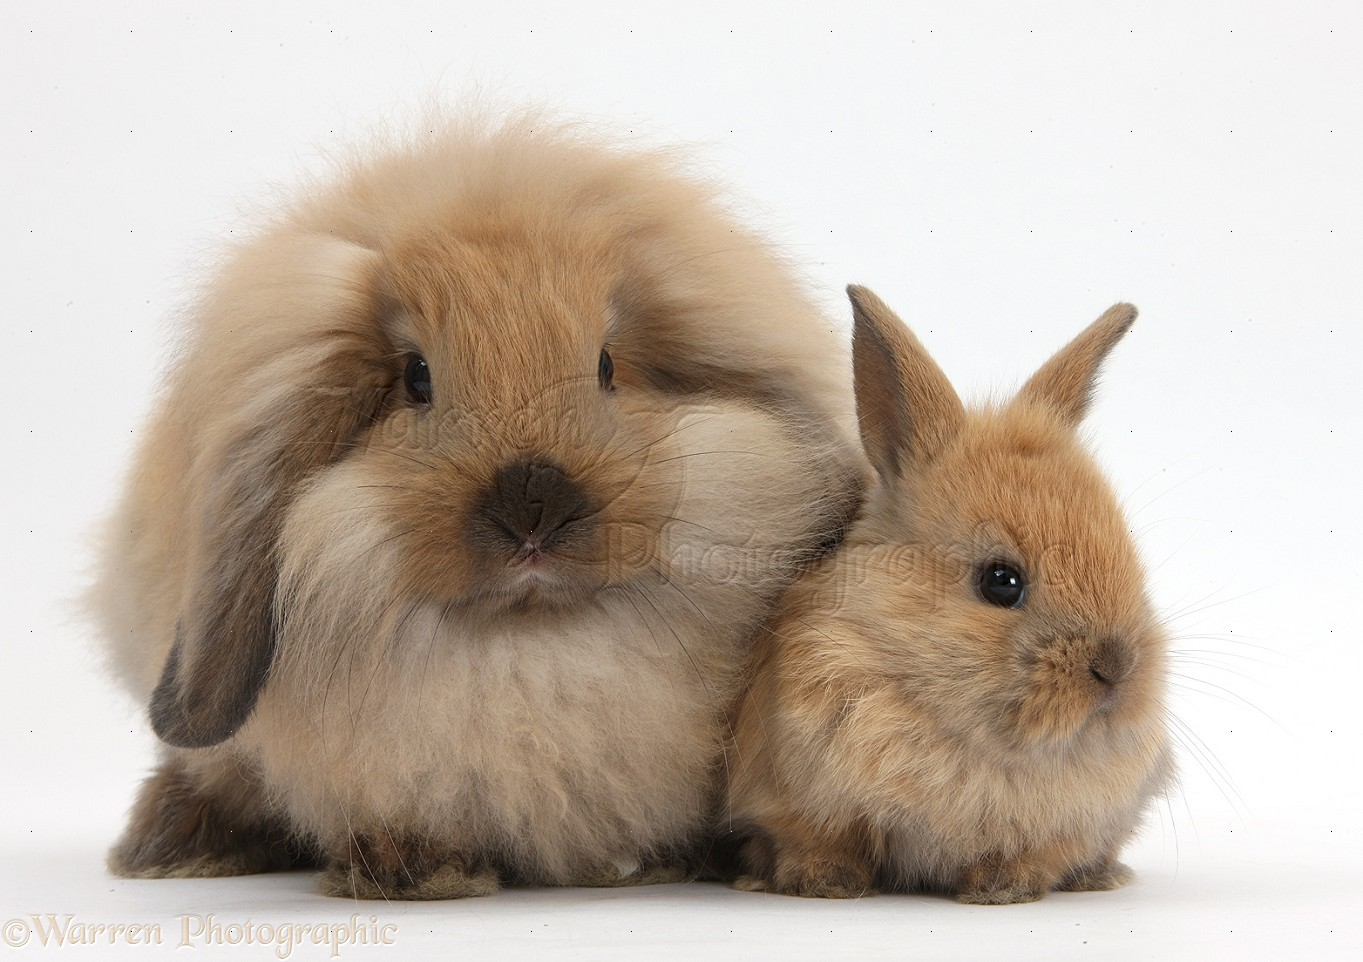 fluffy lionhead x lop rabbit and cute baby bunny photo wp35984